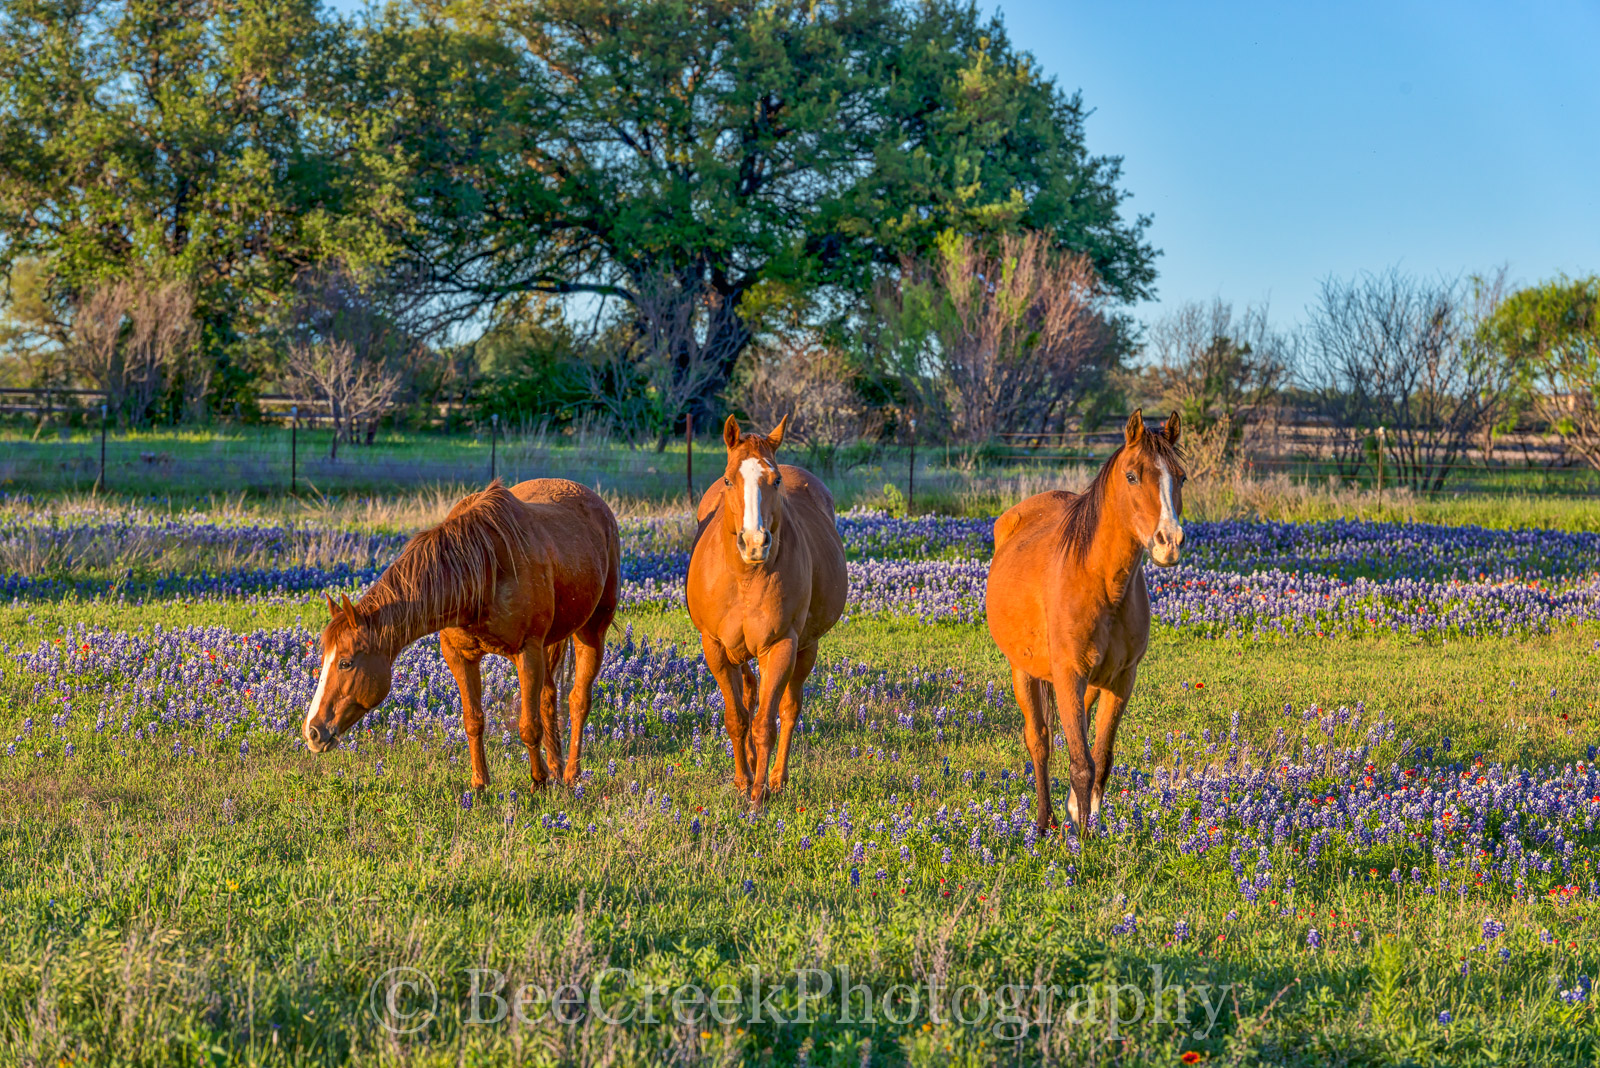 bluebonnet, blue blonnets , field, horses, rural, scene, landscape, wildflowers, , sun, field, , photo